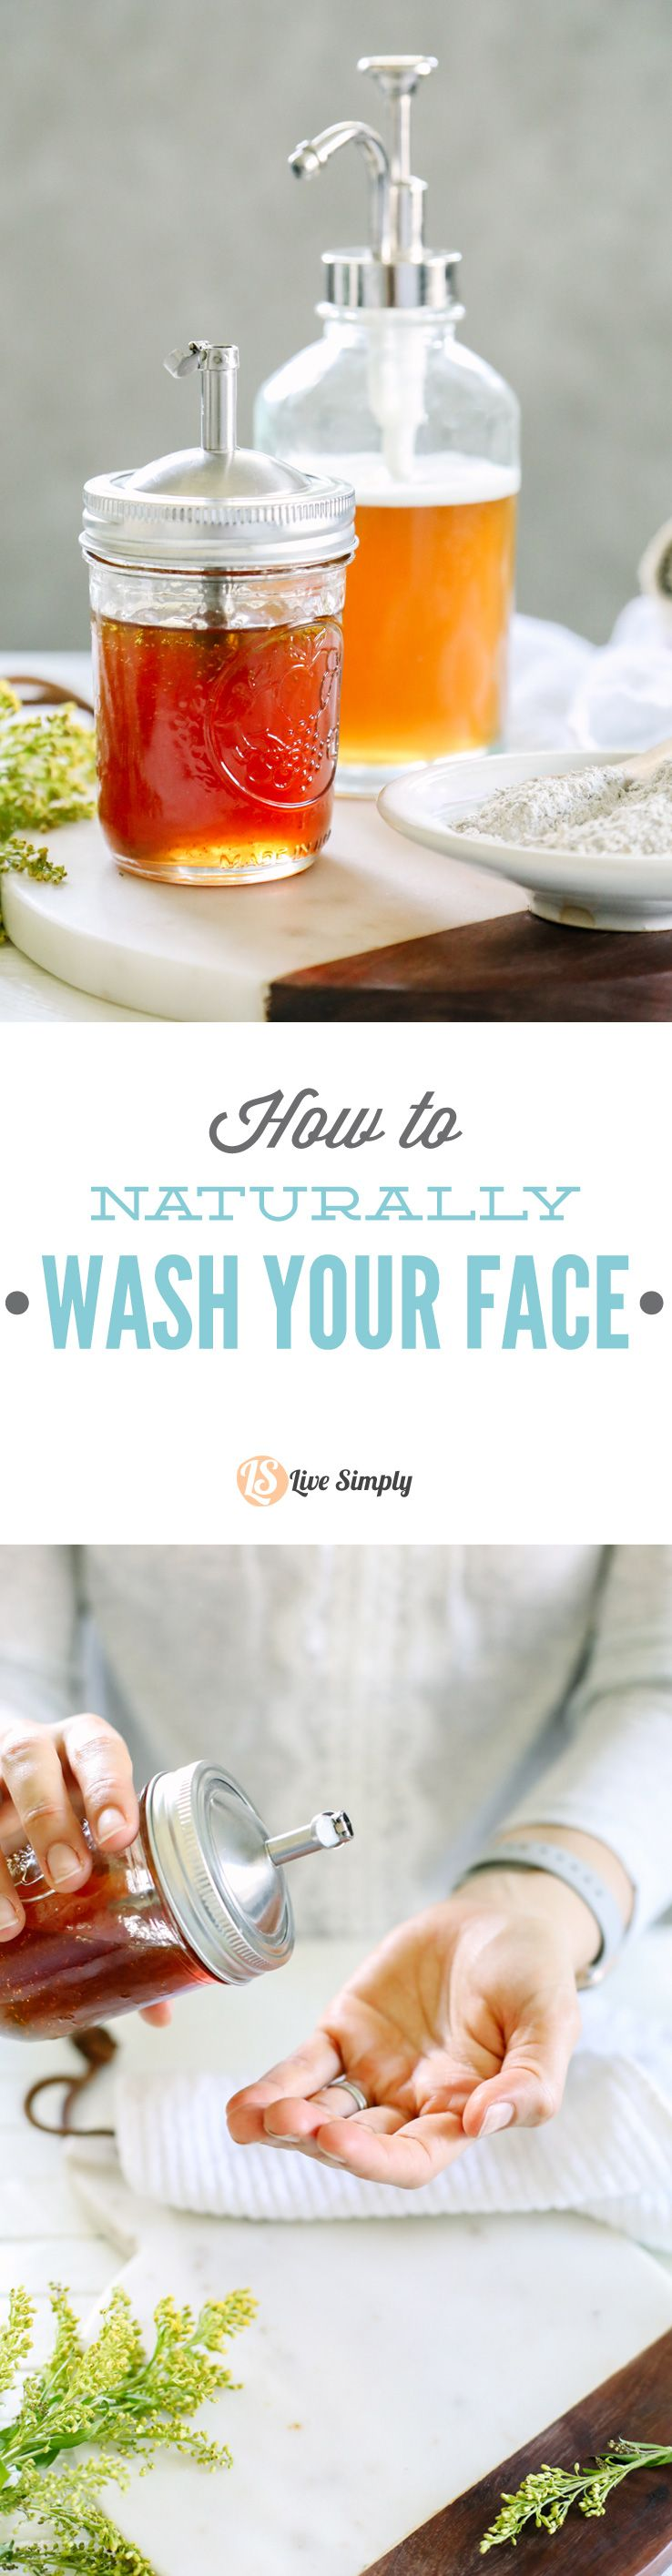 How to Naturally Wash Your Face Simple DIY (Homemade